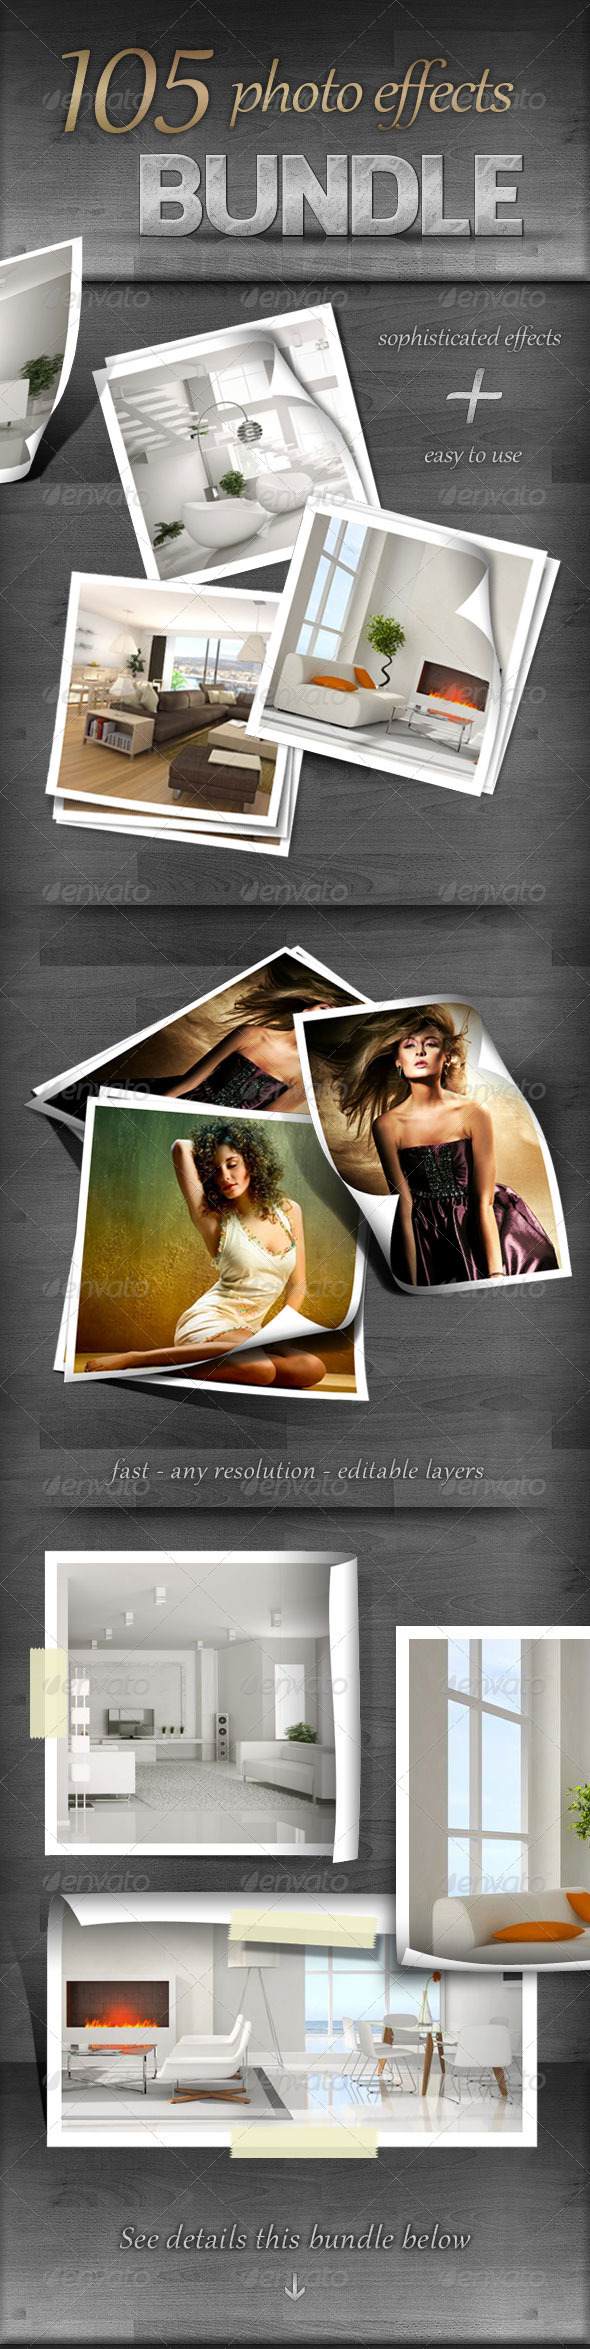 Graphic River 105 Photo Effects Bundle Add-ons -  Photoshop  Actions  Utilities 723542